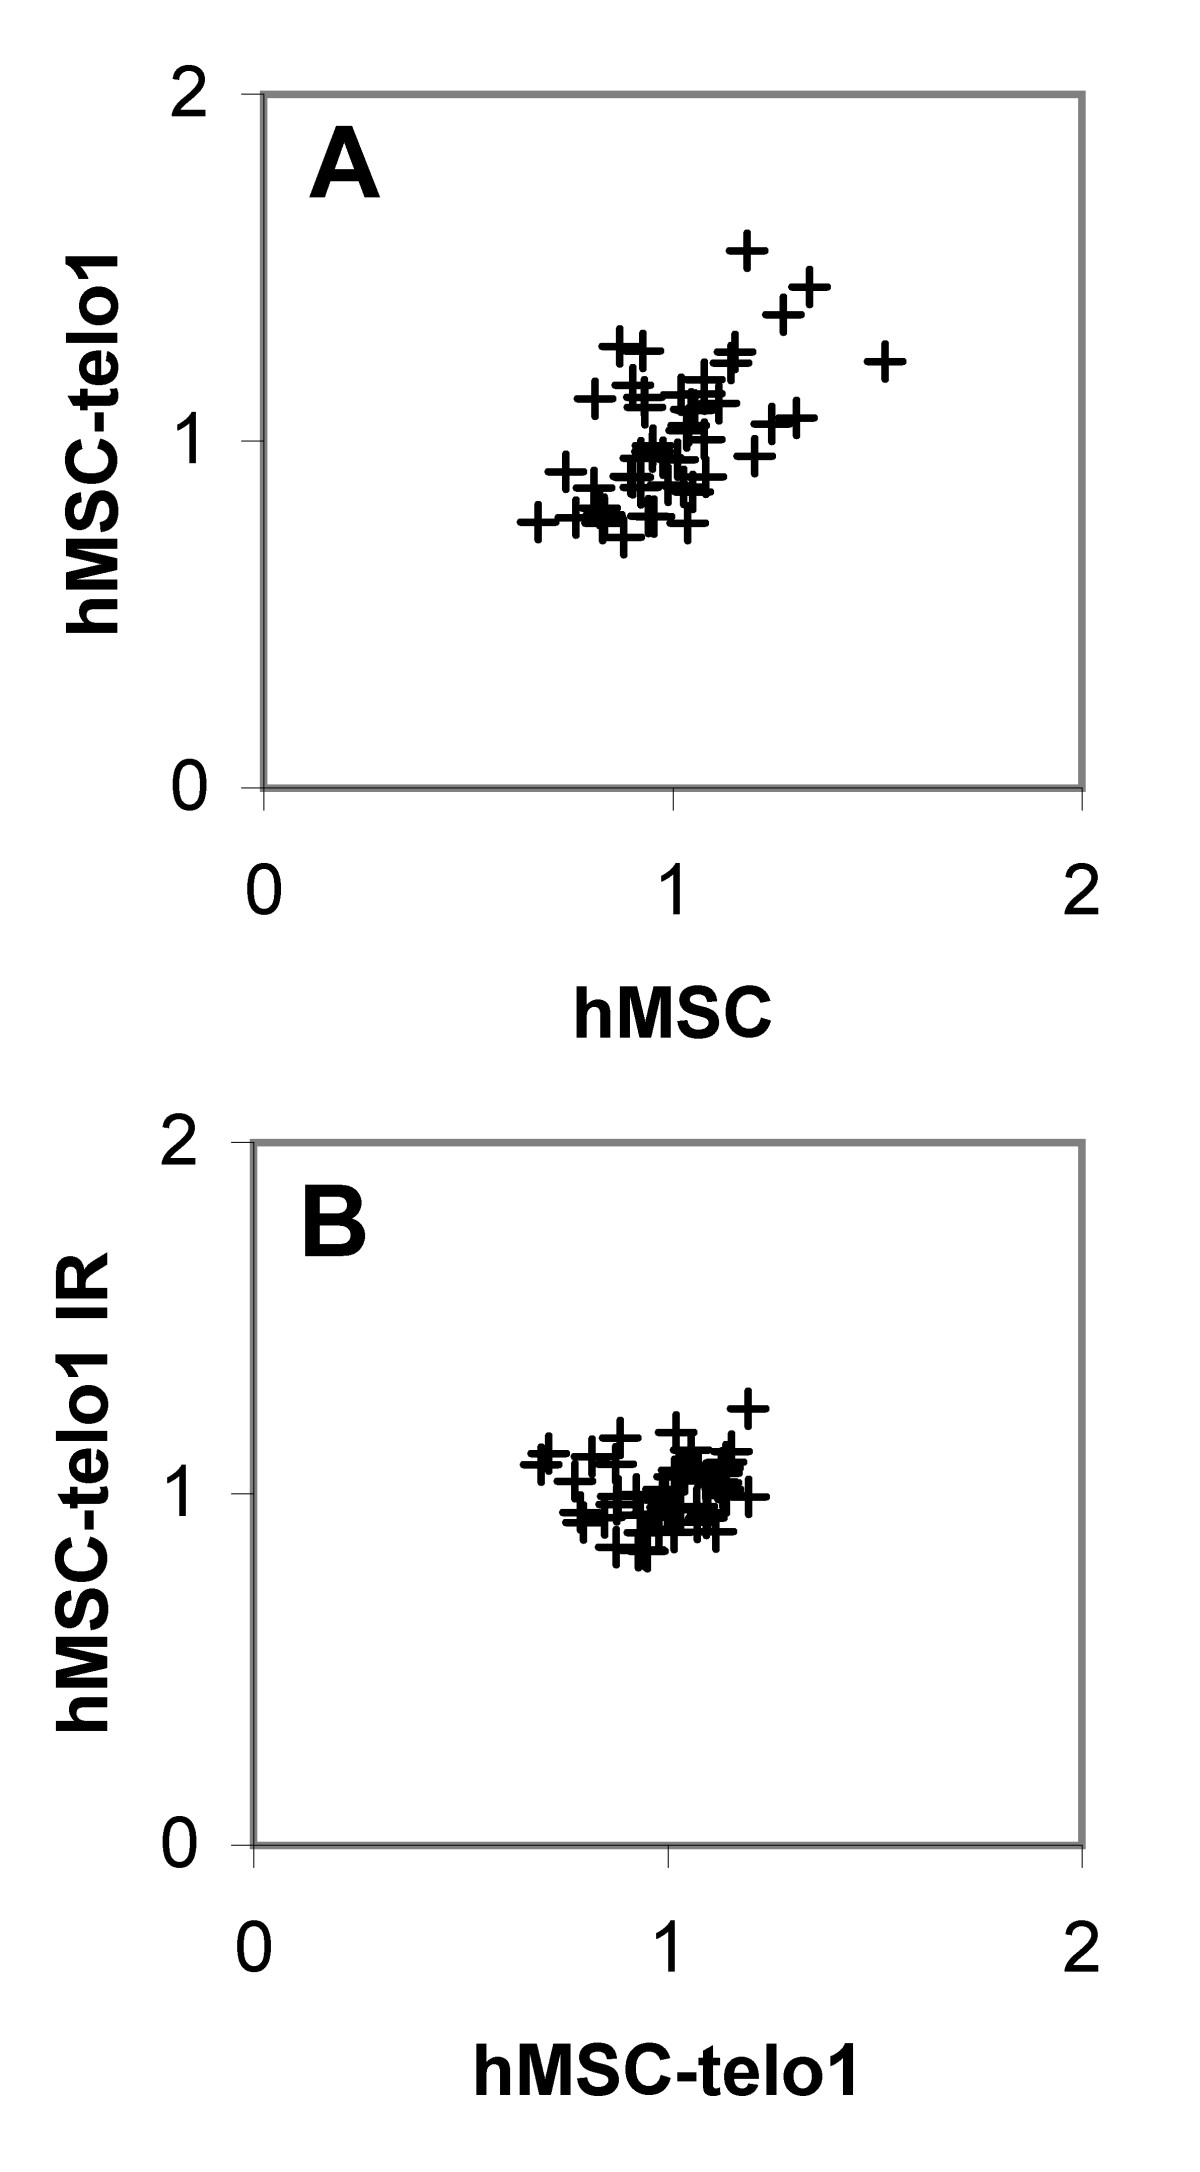 https://static-content.springer.com/image/art%3A10.1186%2F1471-2199-8-49/MediaObjects/12867_2007_Article_186_Fig6_HTML.jpg